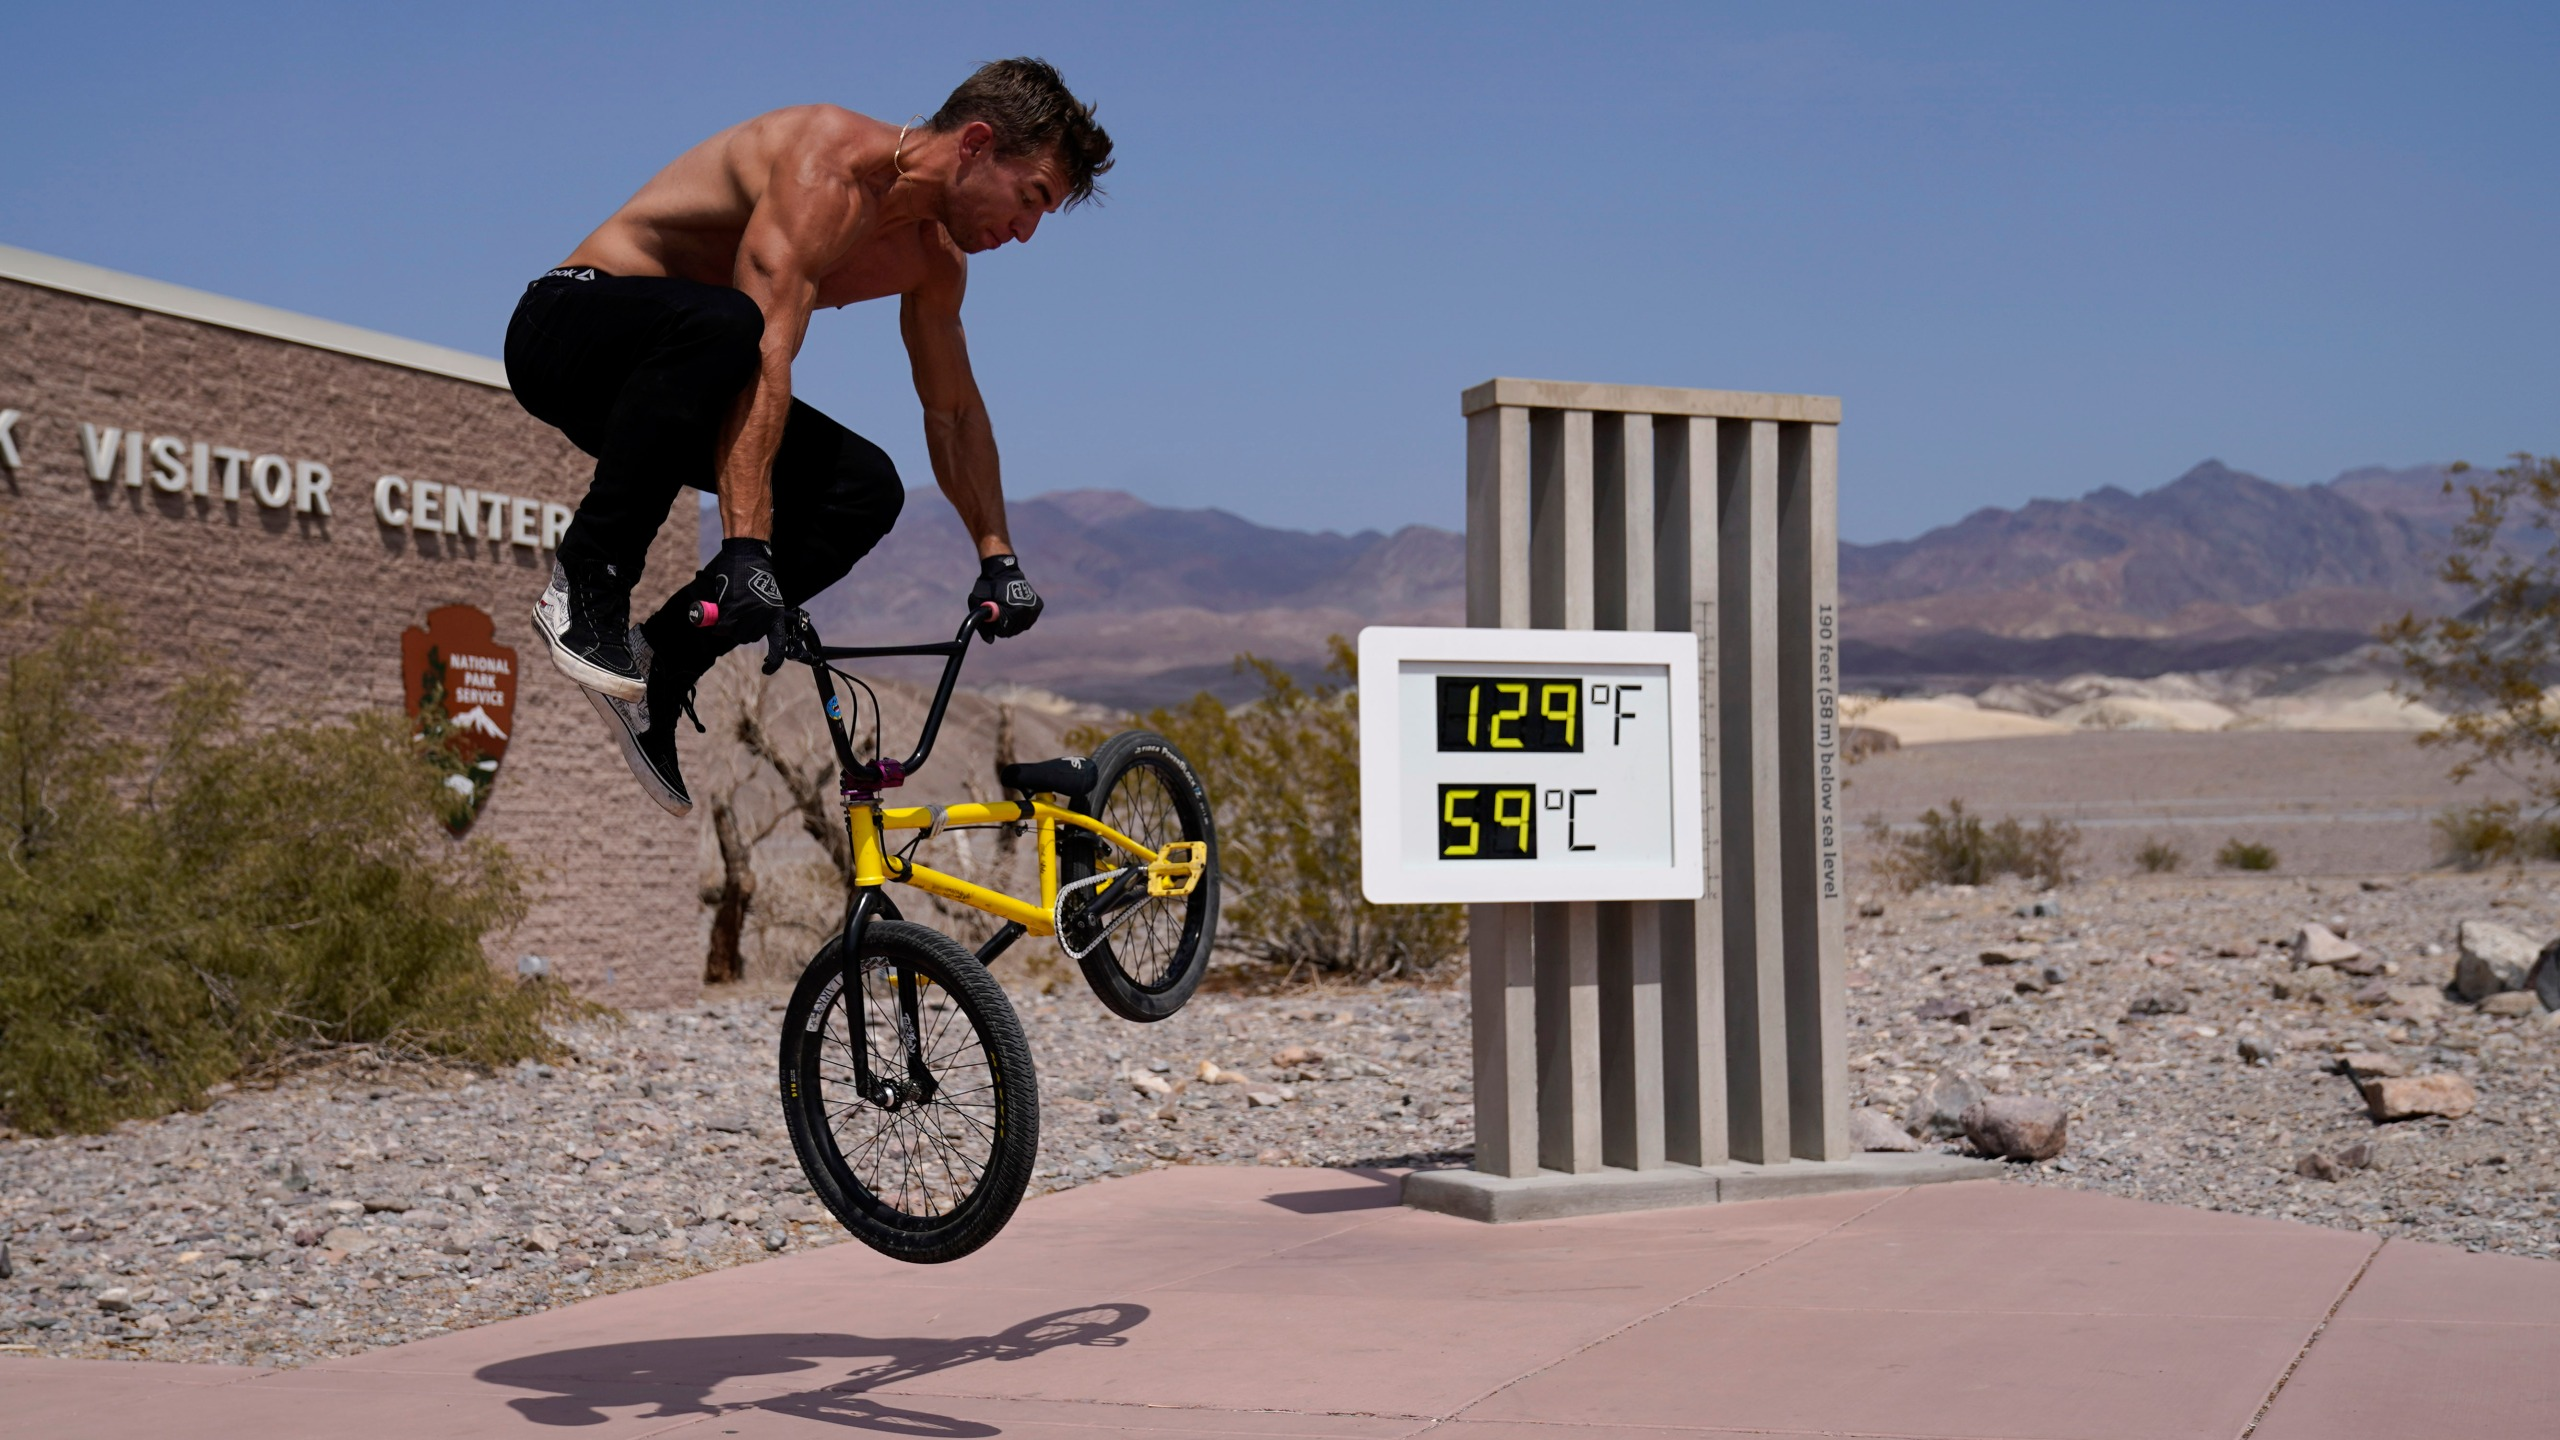 Michael Major rides his bike at the Furnace Creek Visitor Center thermometer Monday, Aug. 17, 2020, in Death Valley National Park, Calif. The thermometer is not official but is a popular photo spot. (AP Photo/John Locher)